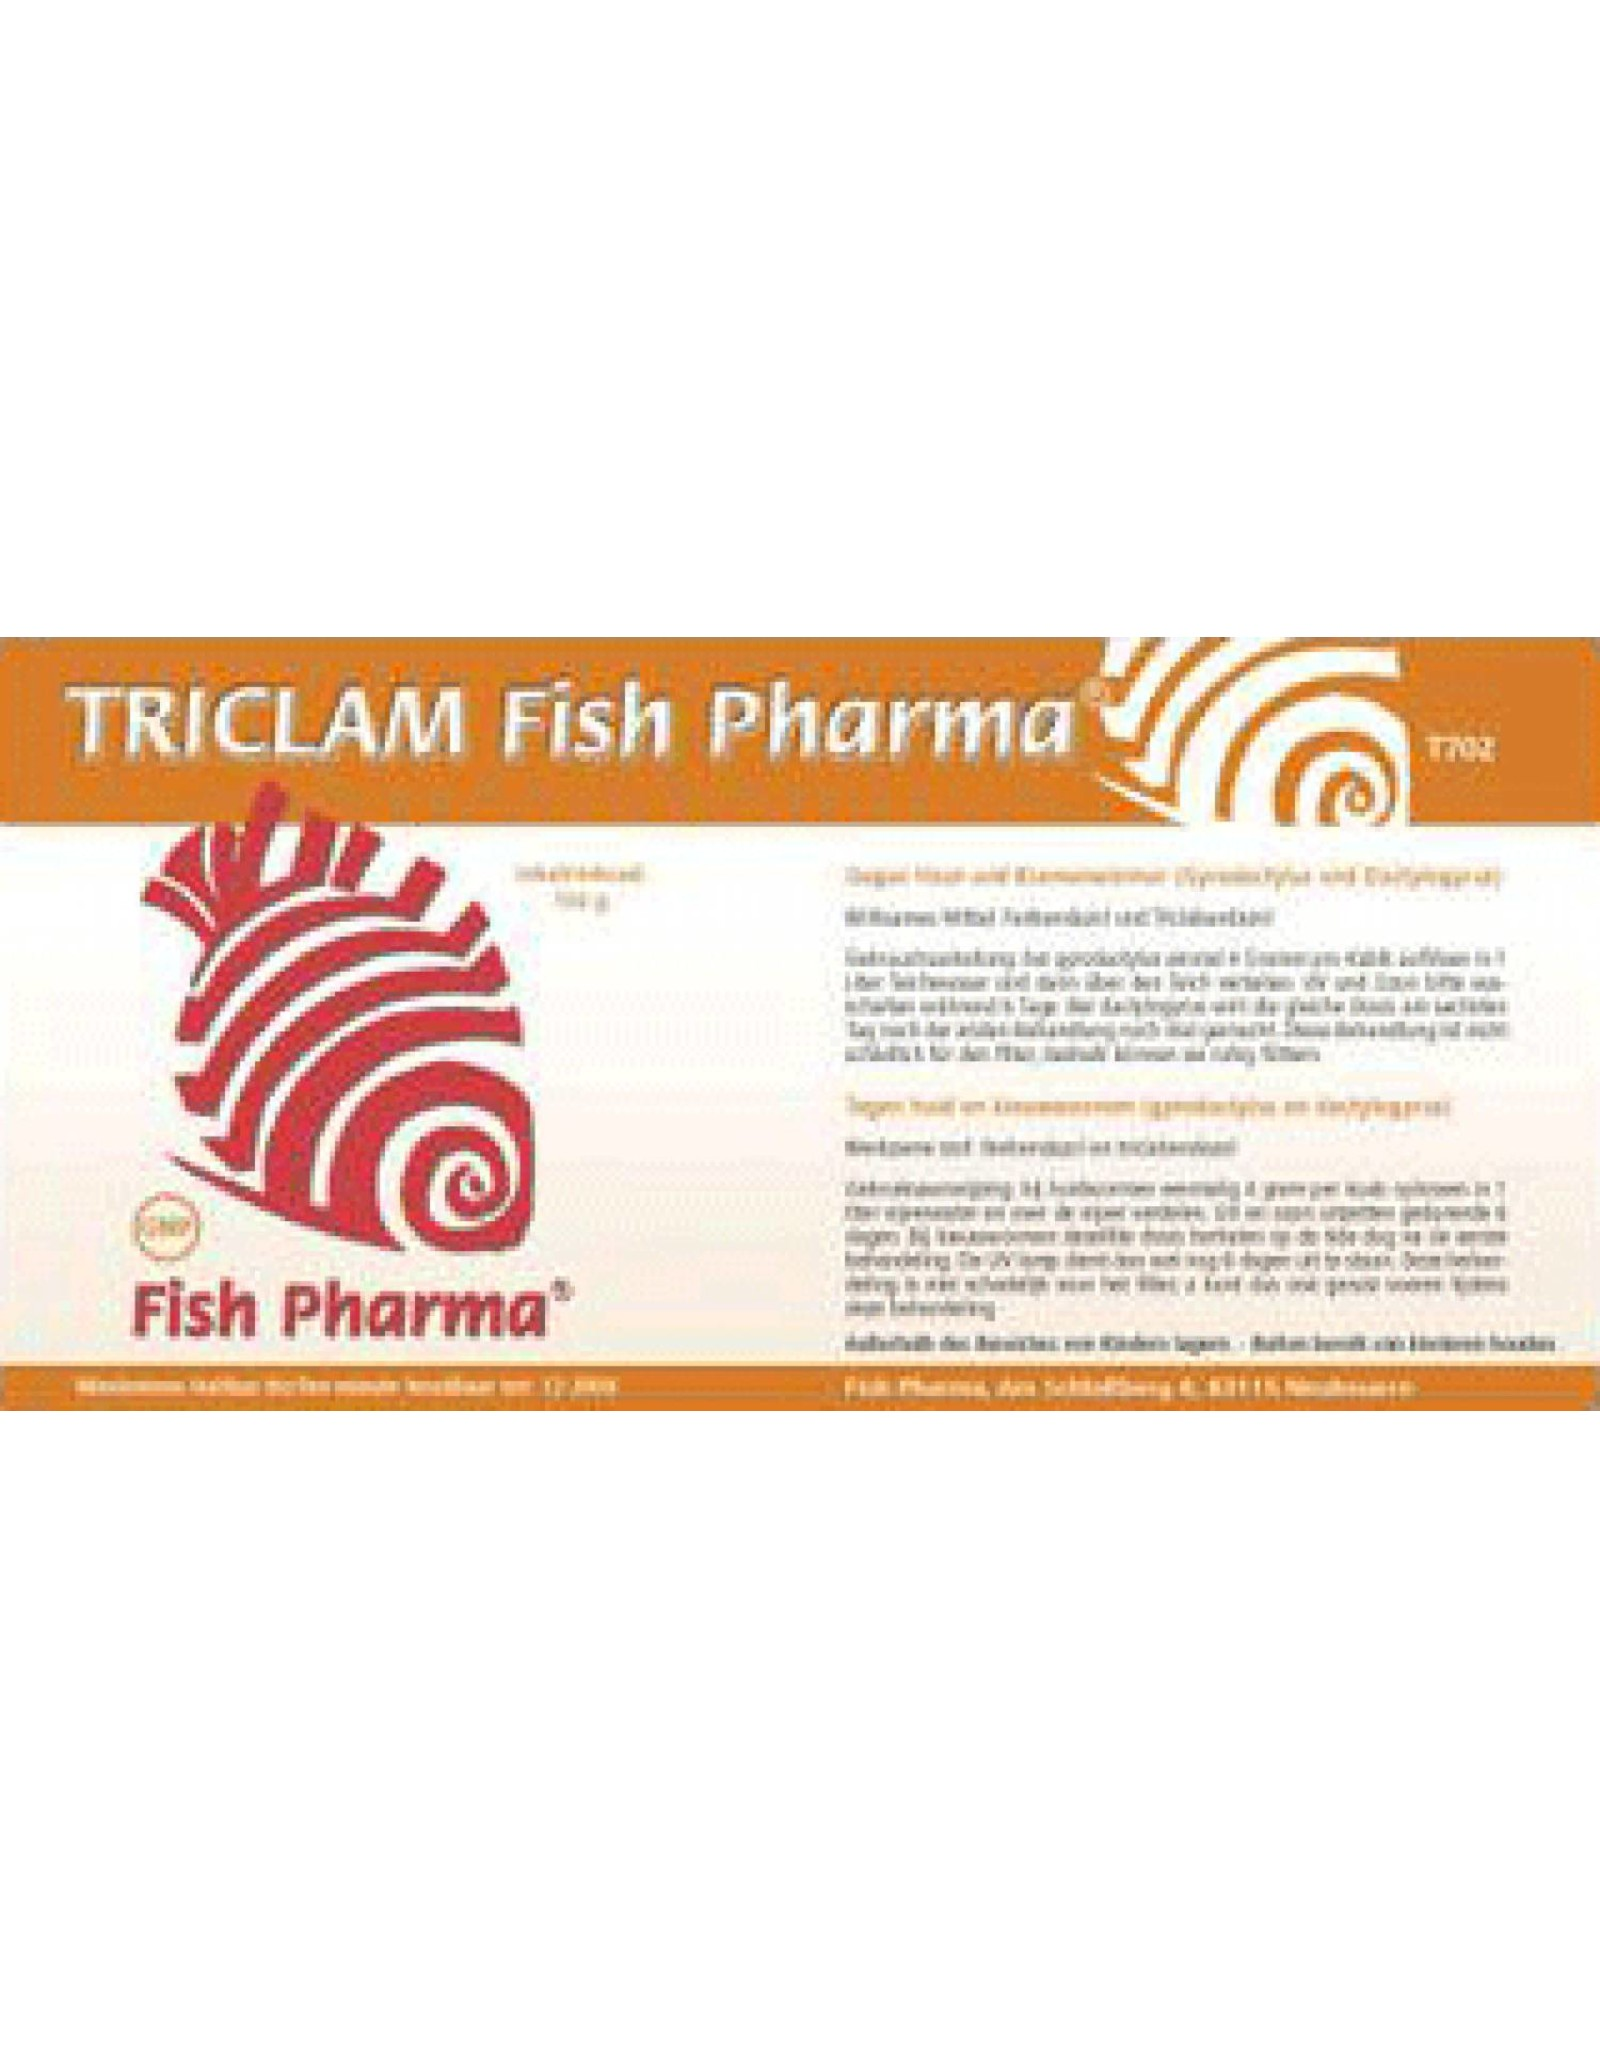 Fish Pharma Triclam against skin and gill flukes